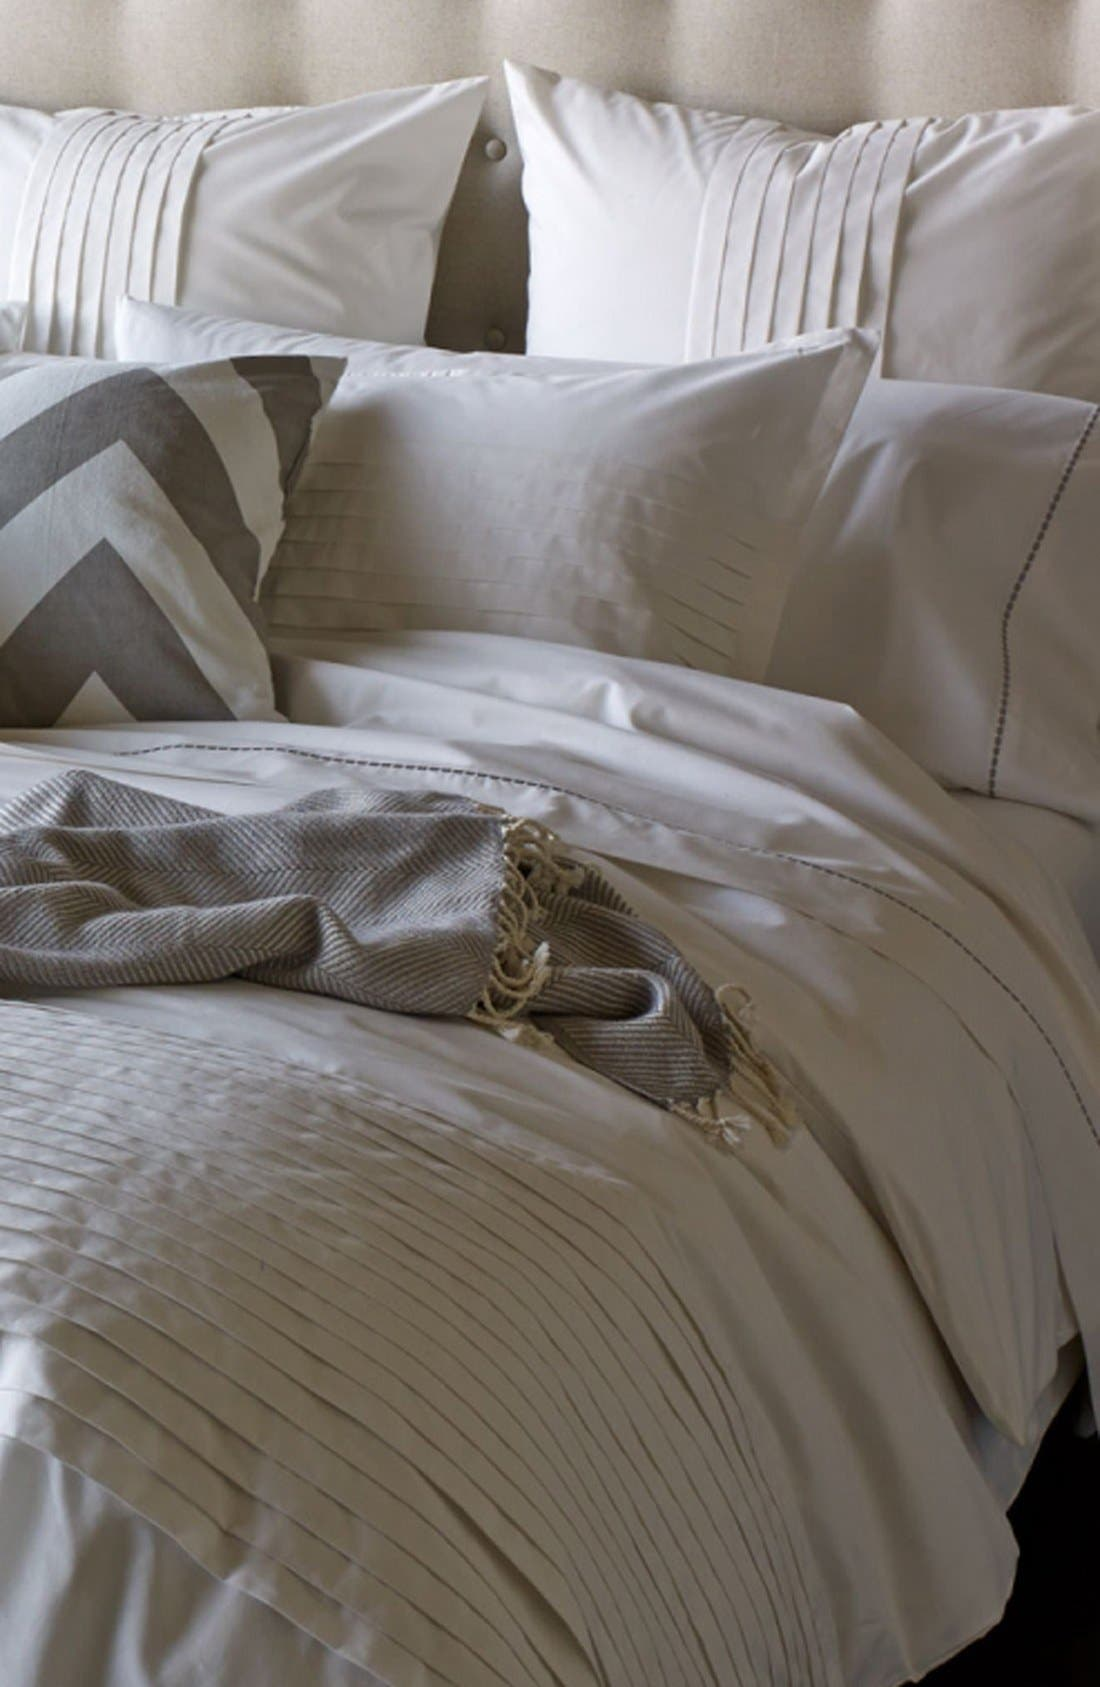 zestt 'Block Island' 200 Thread Count Organic Cotton Duvet Cover